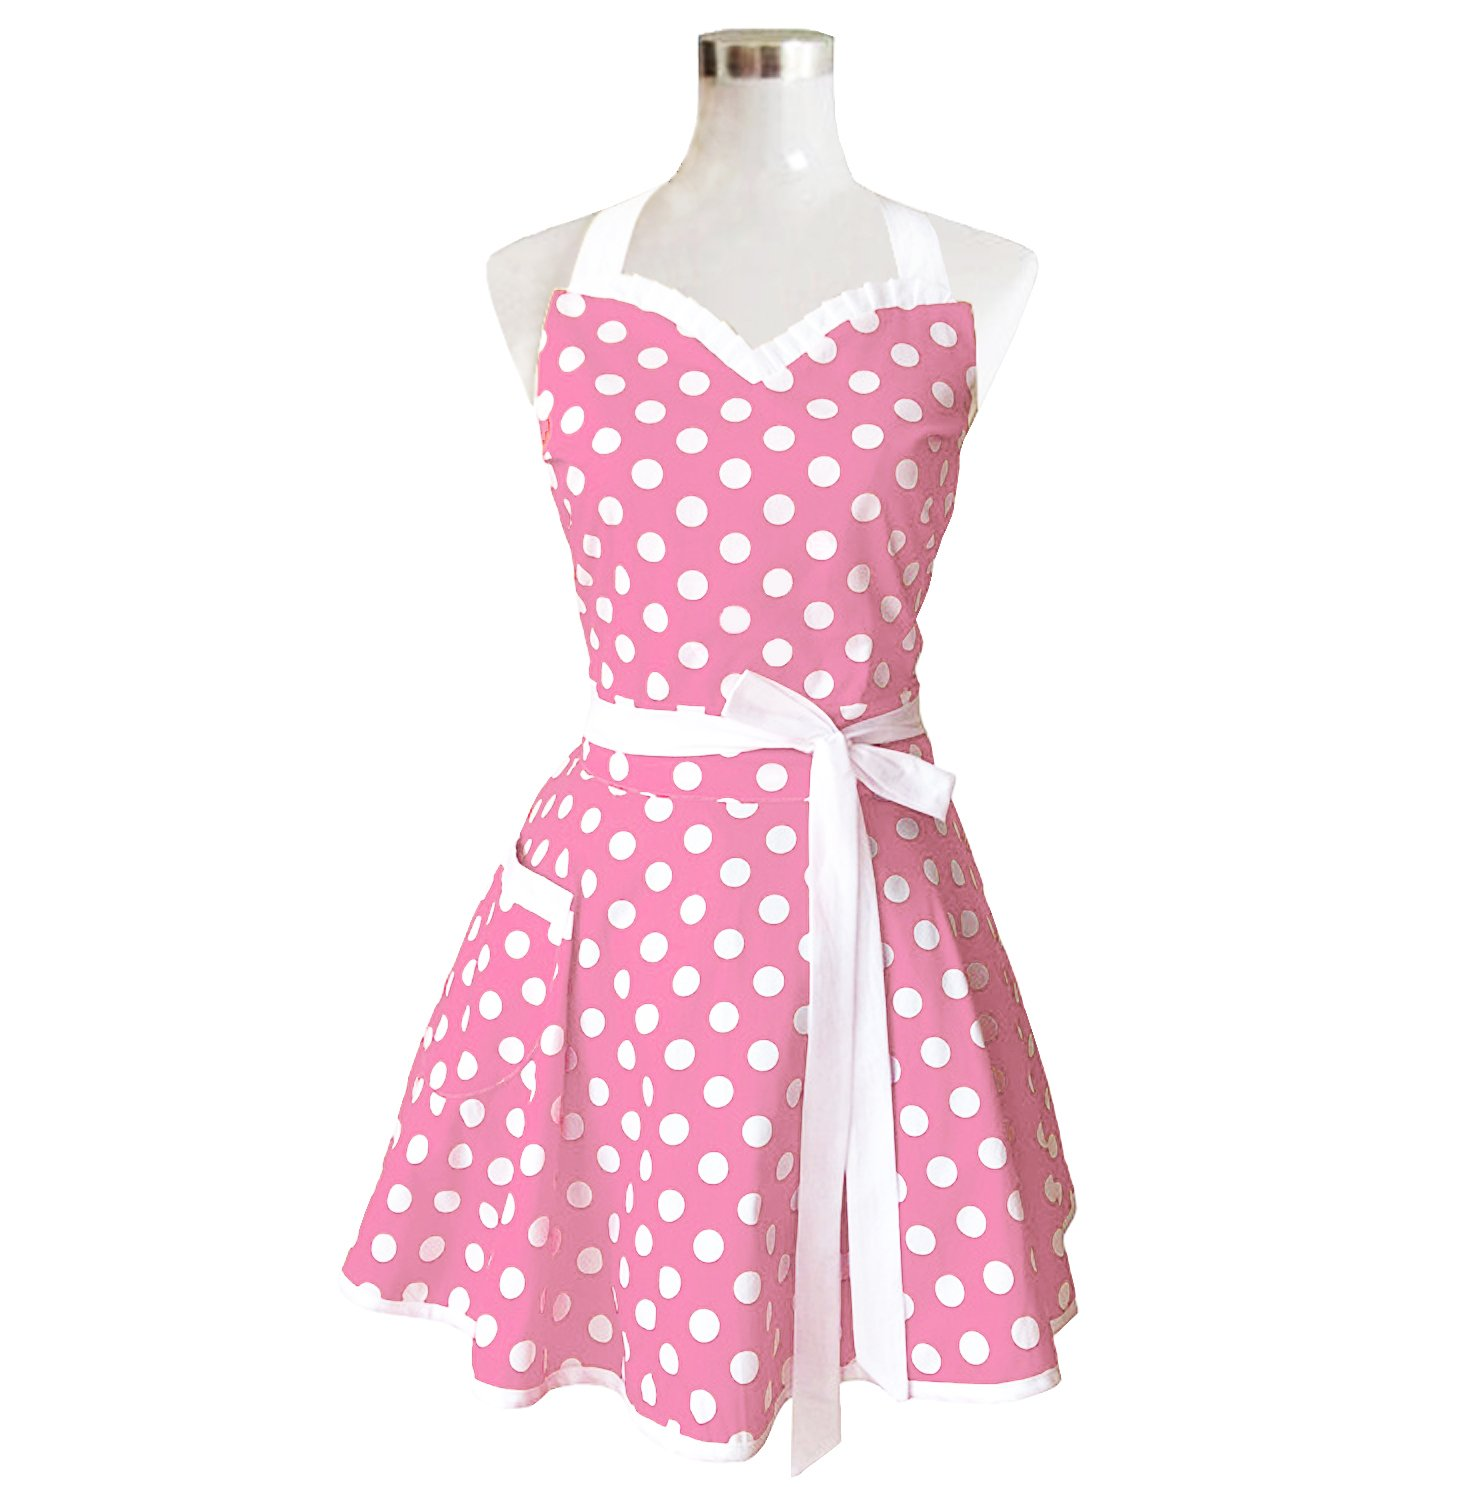 Lovely Sweetheart Pink Retro Kitchen Aprons Woman Girl Cotton Polka Dot Cooking Salon Pinafore Vintage Apron Dress Christmas